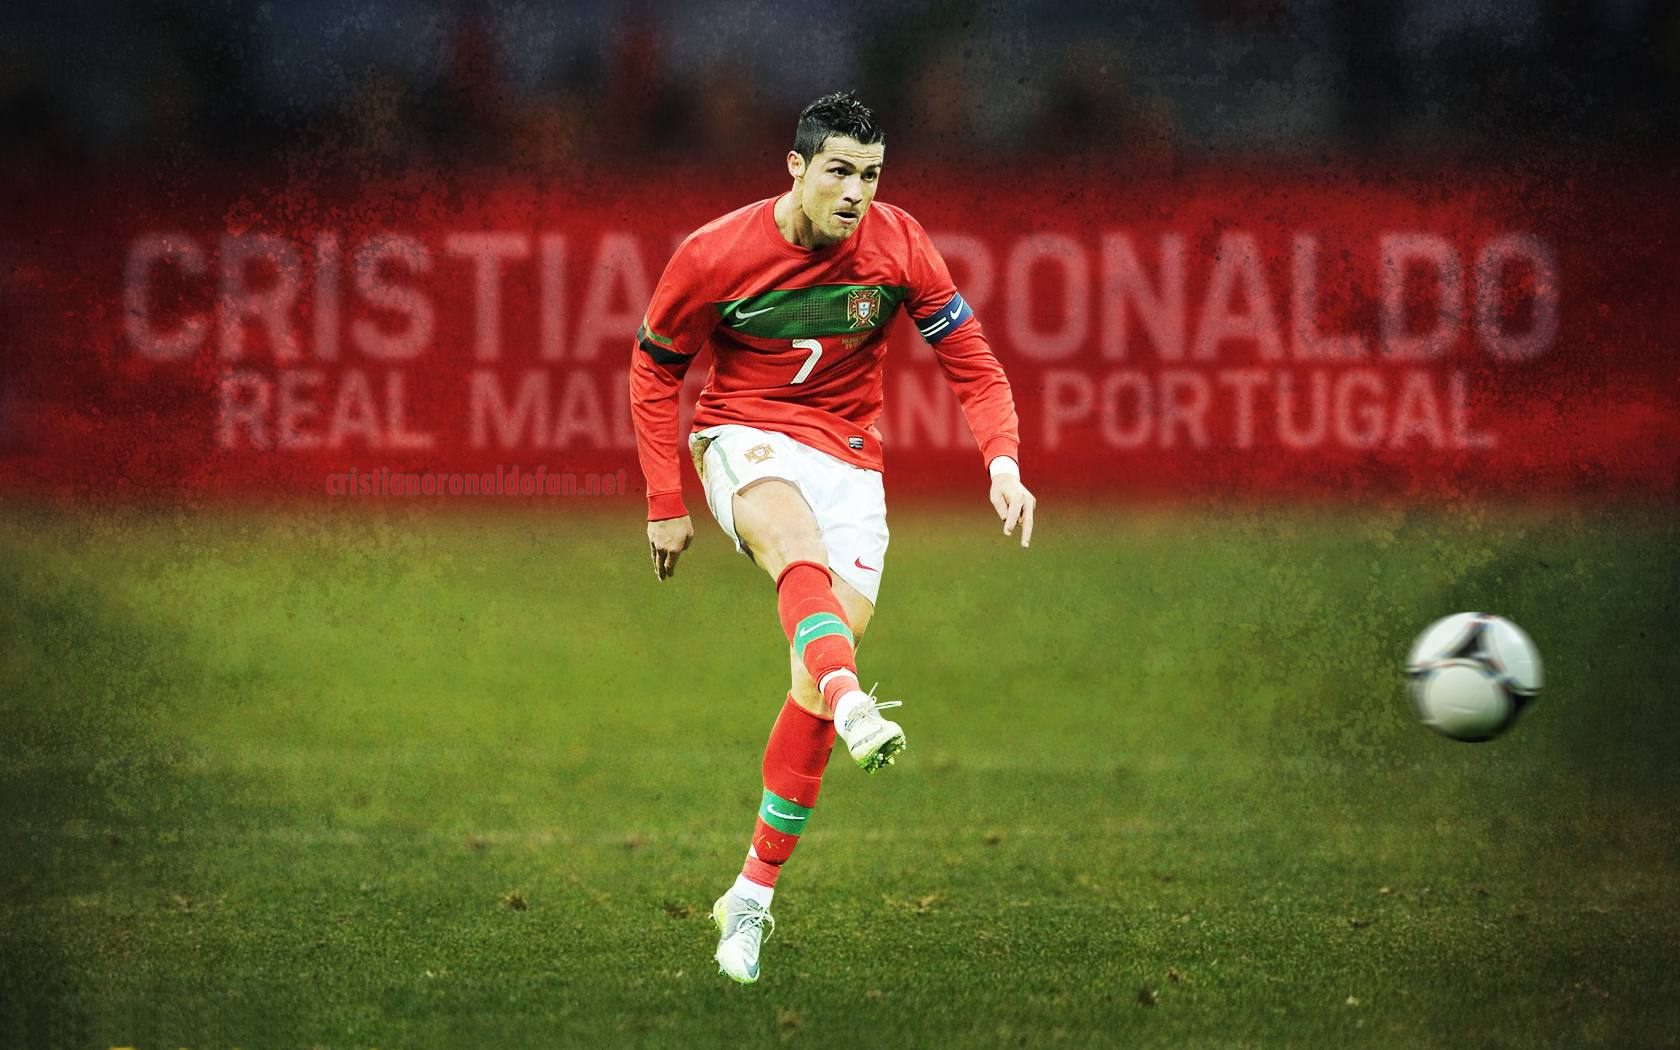 cristiano ronaldo portugal wallpaper hd | super wallpapers